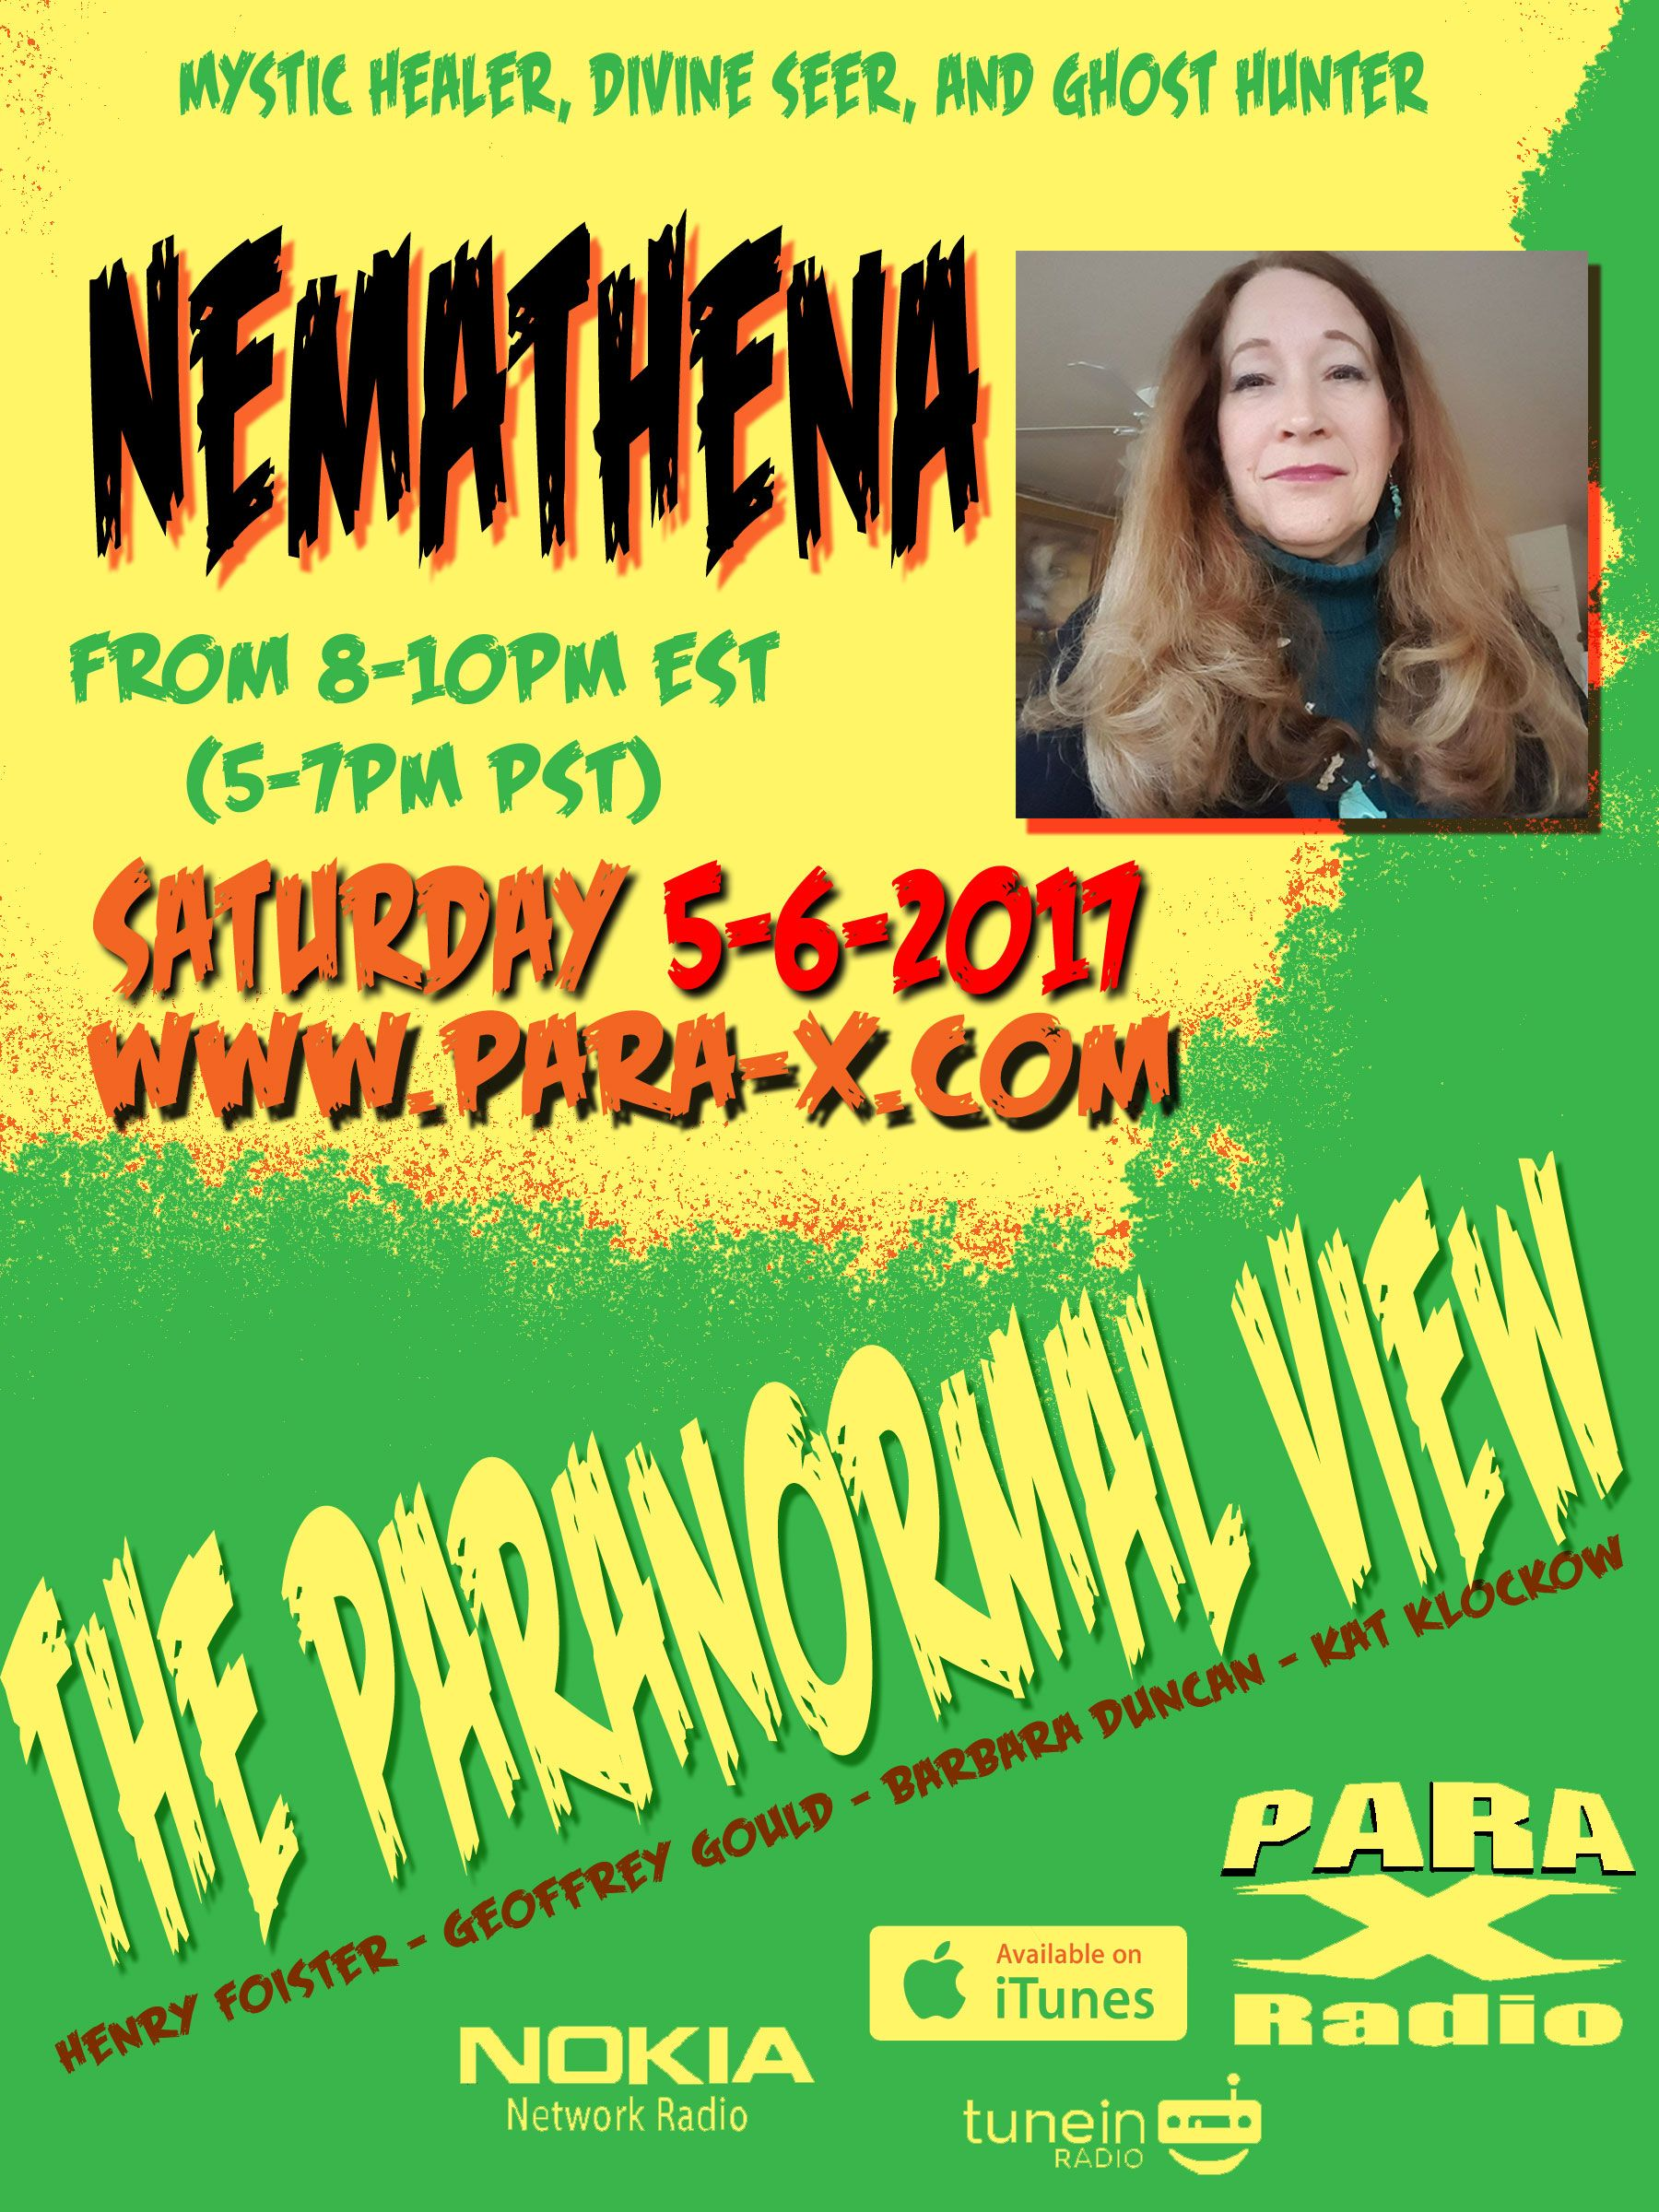 The Paranormal View hosts